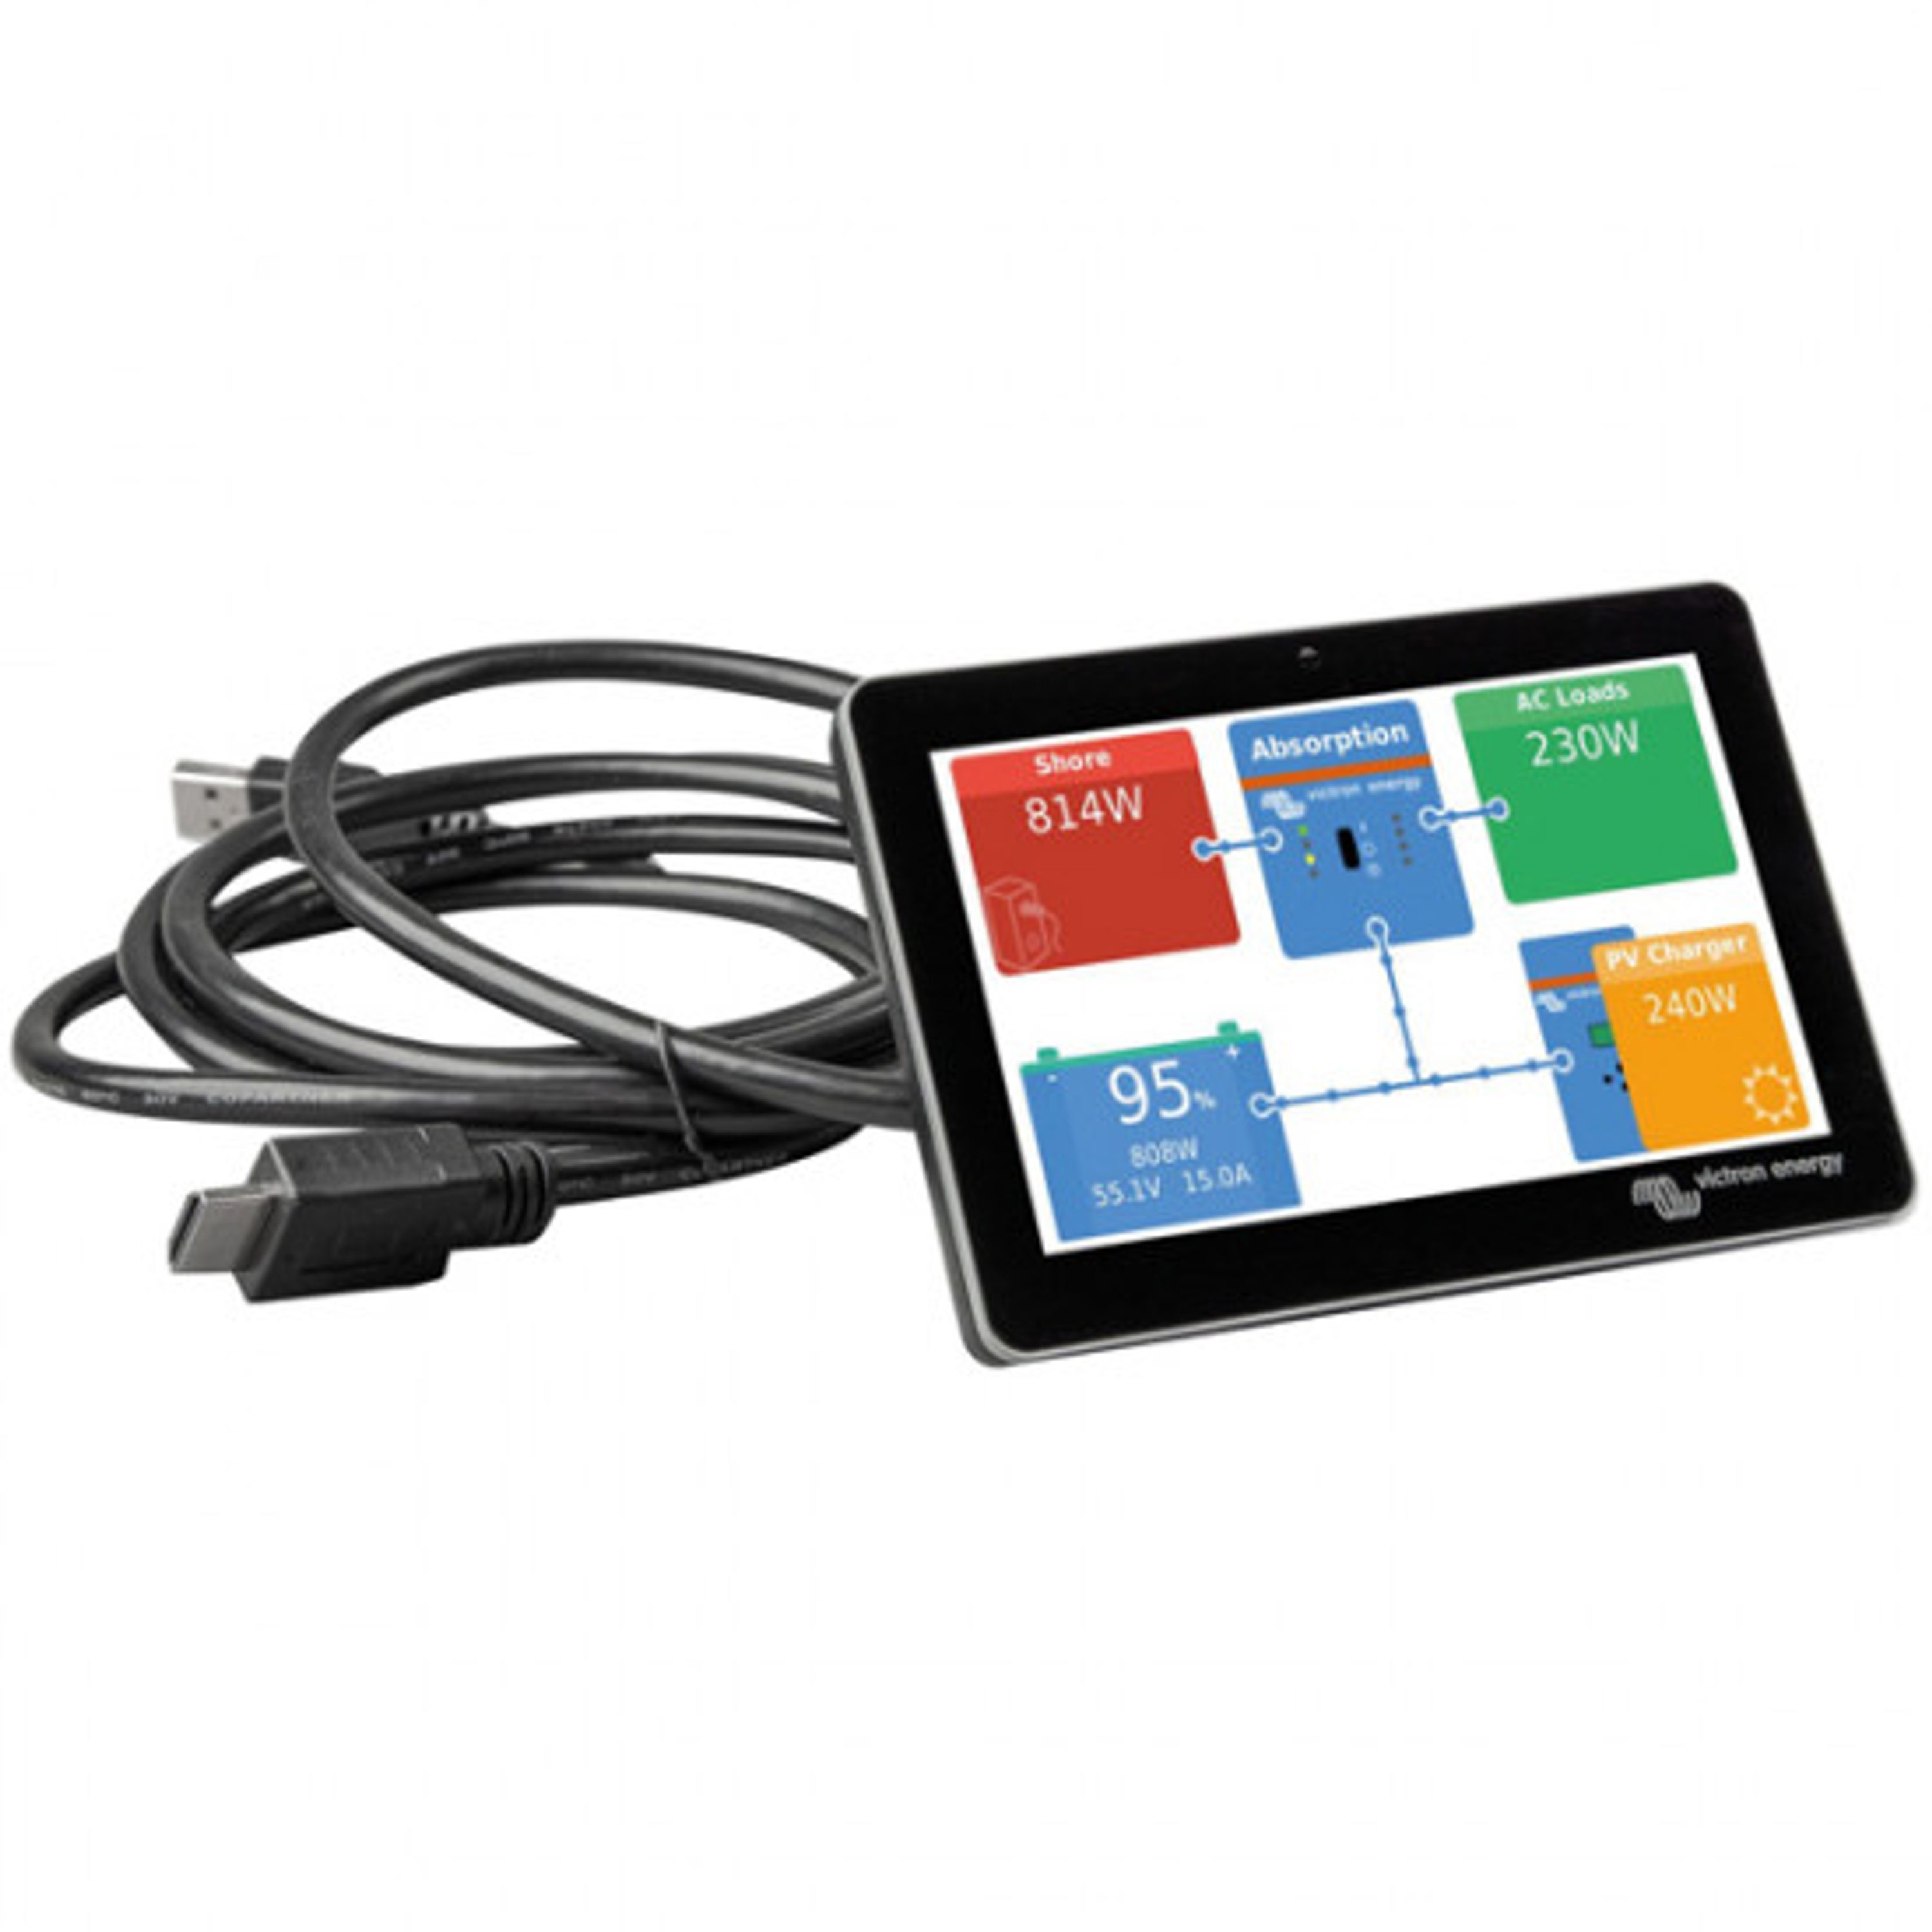 Touchdisplay victron gx touch 50